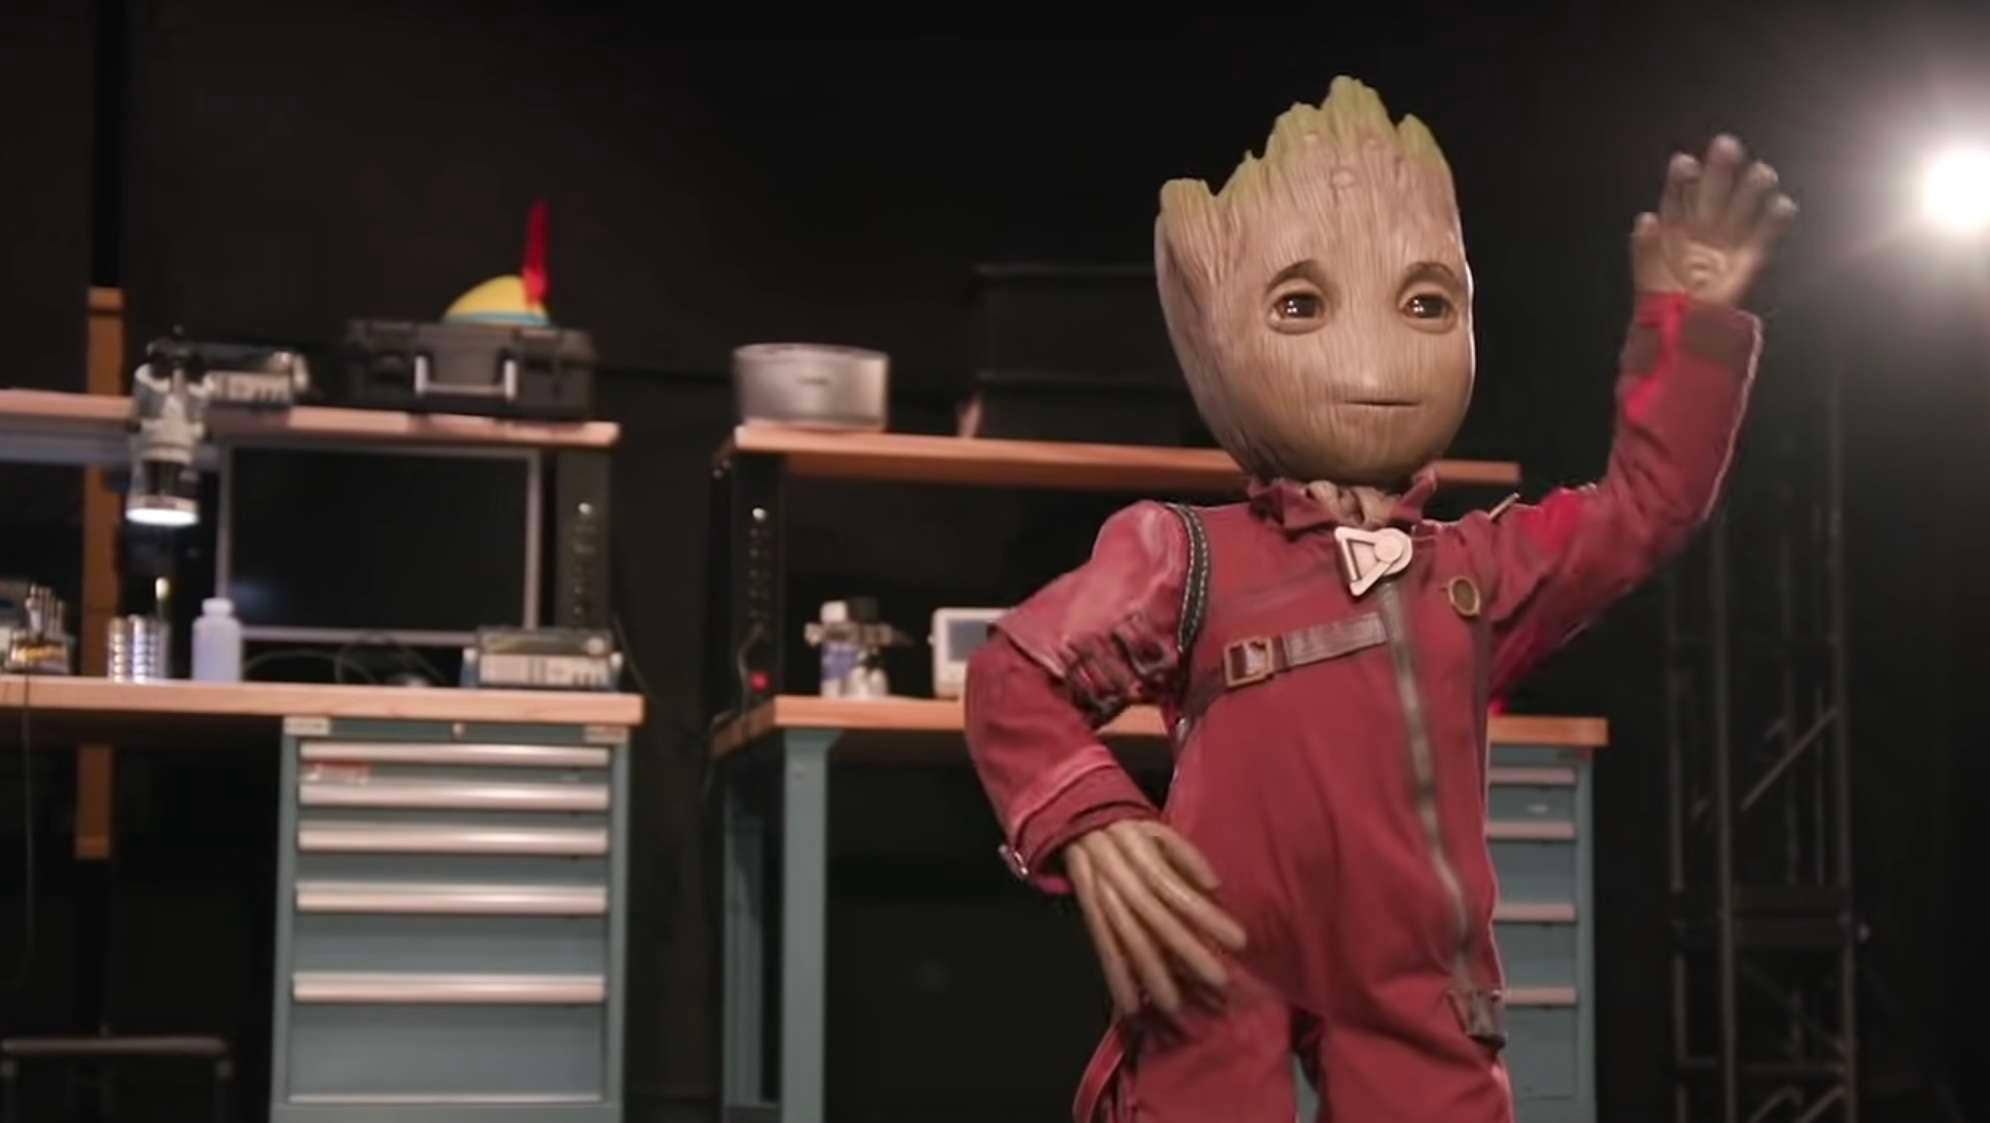 Disney imagineers reveal new robotic 'Baby Groot' in new video thumbnail